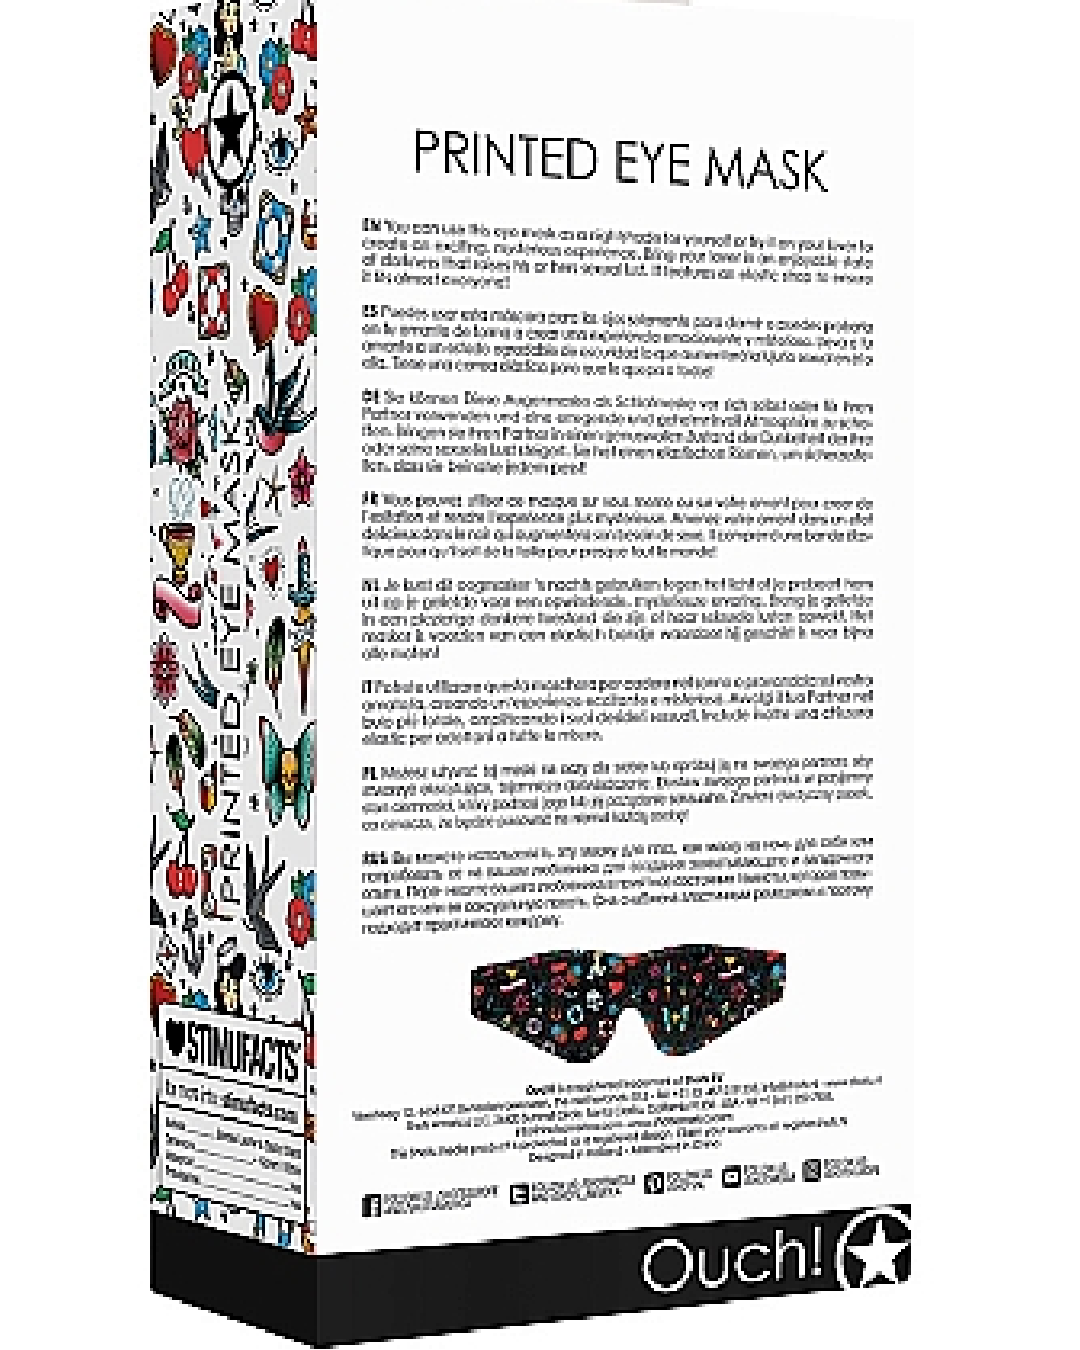 Ouch! Old School Tattoo Style Printed Eye Mask  back of box